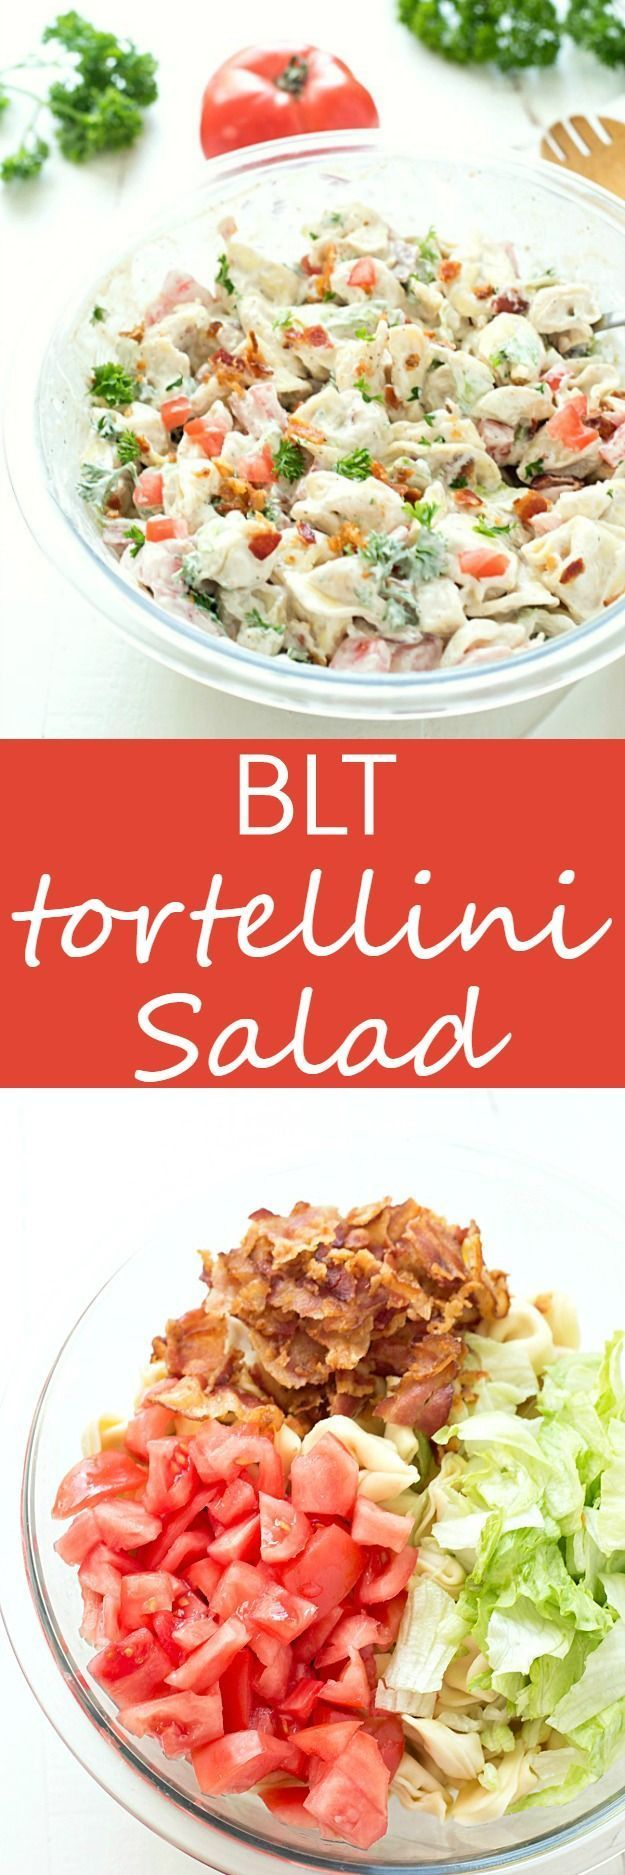 Blt Tortellini Salad Recipe Cold Pasta The O 39 Jays And